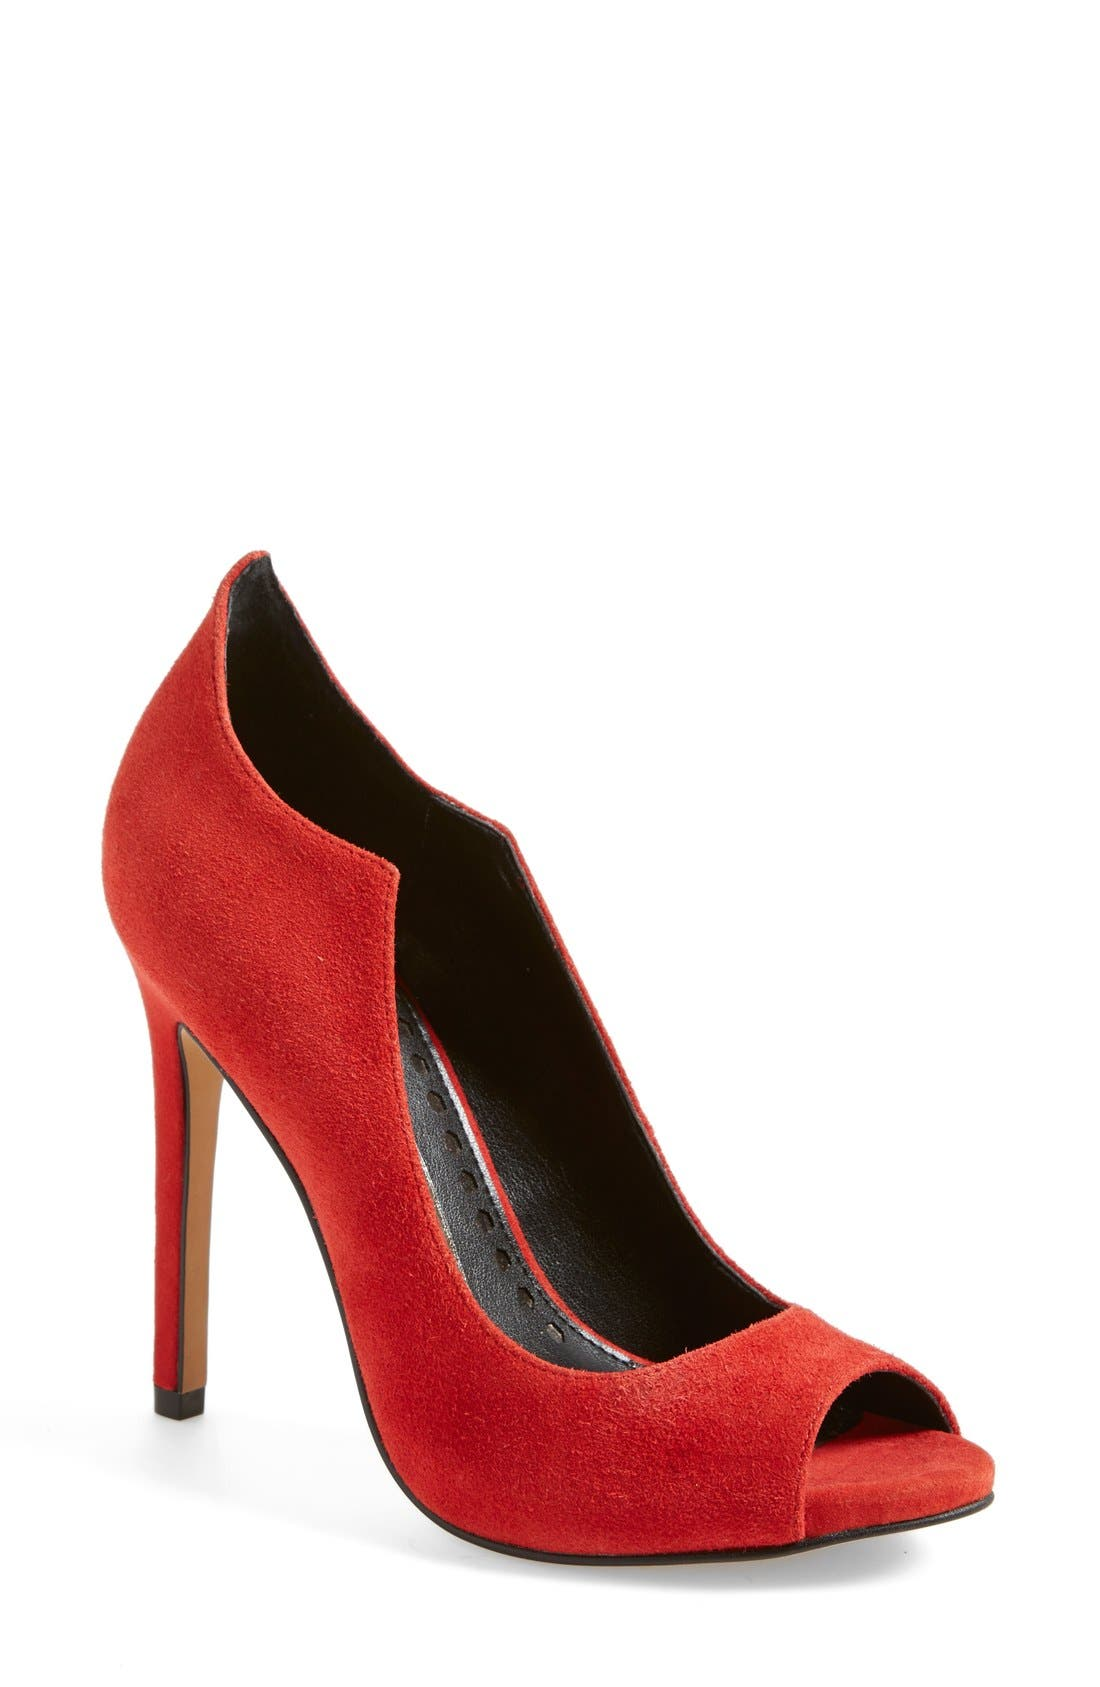 Main Image - Dolce Vita 'Isabel' Peep Toe Pump (Women)